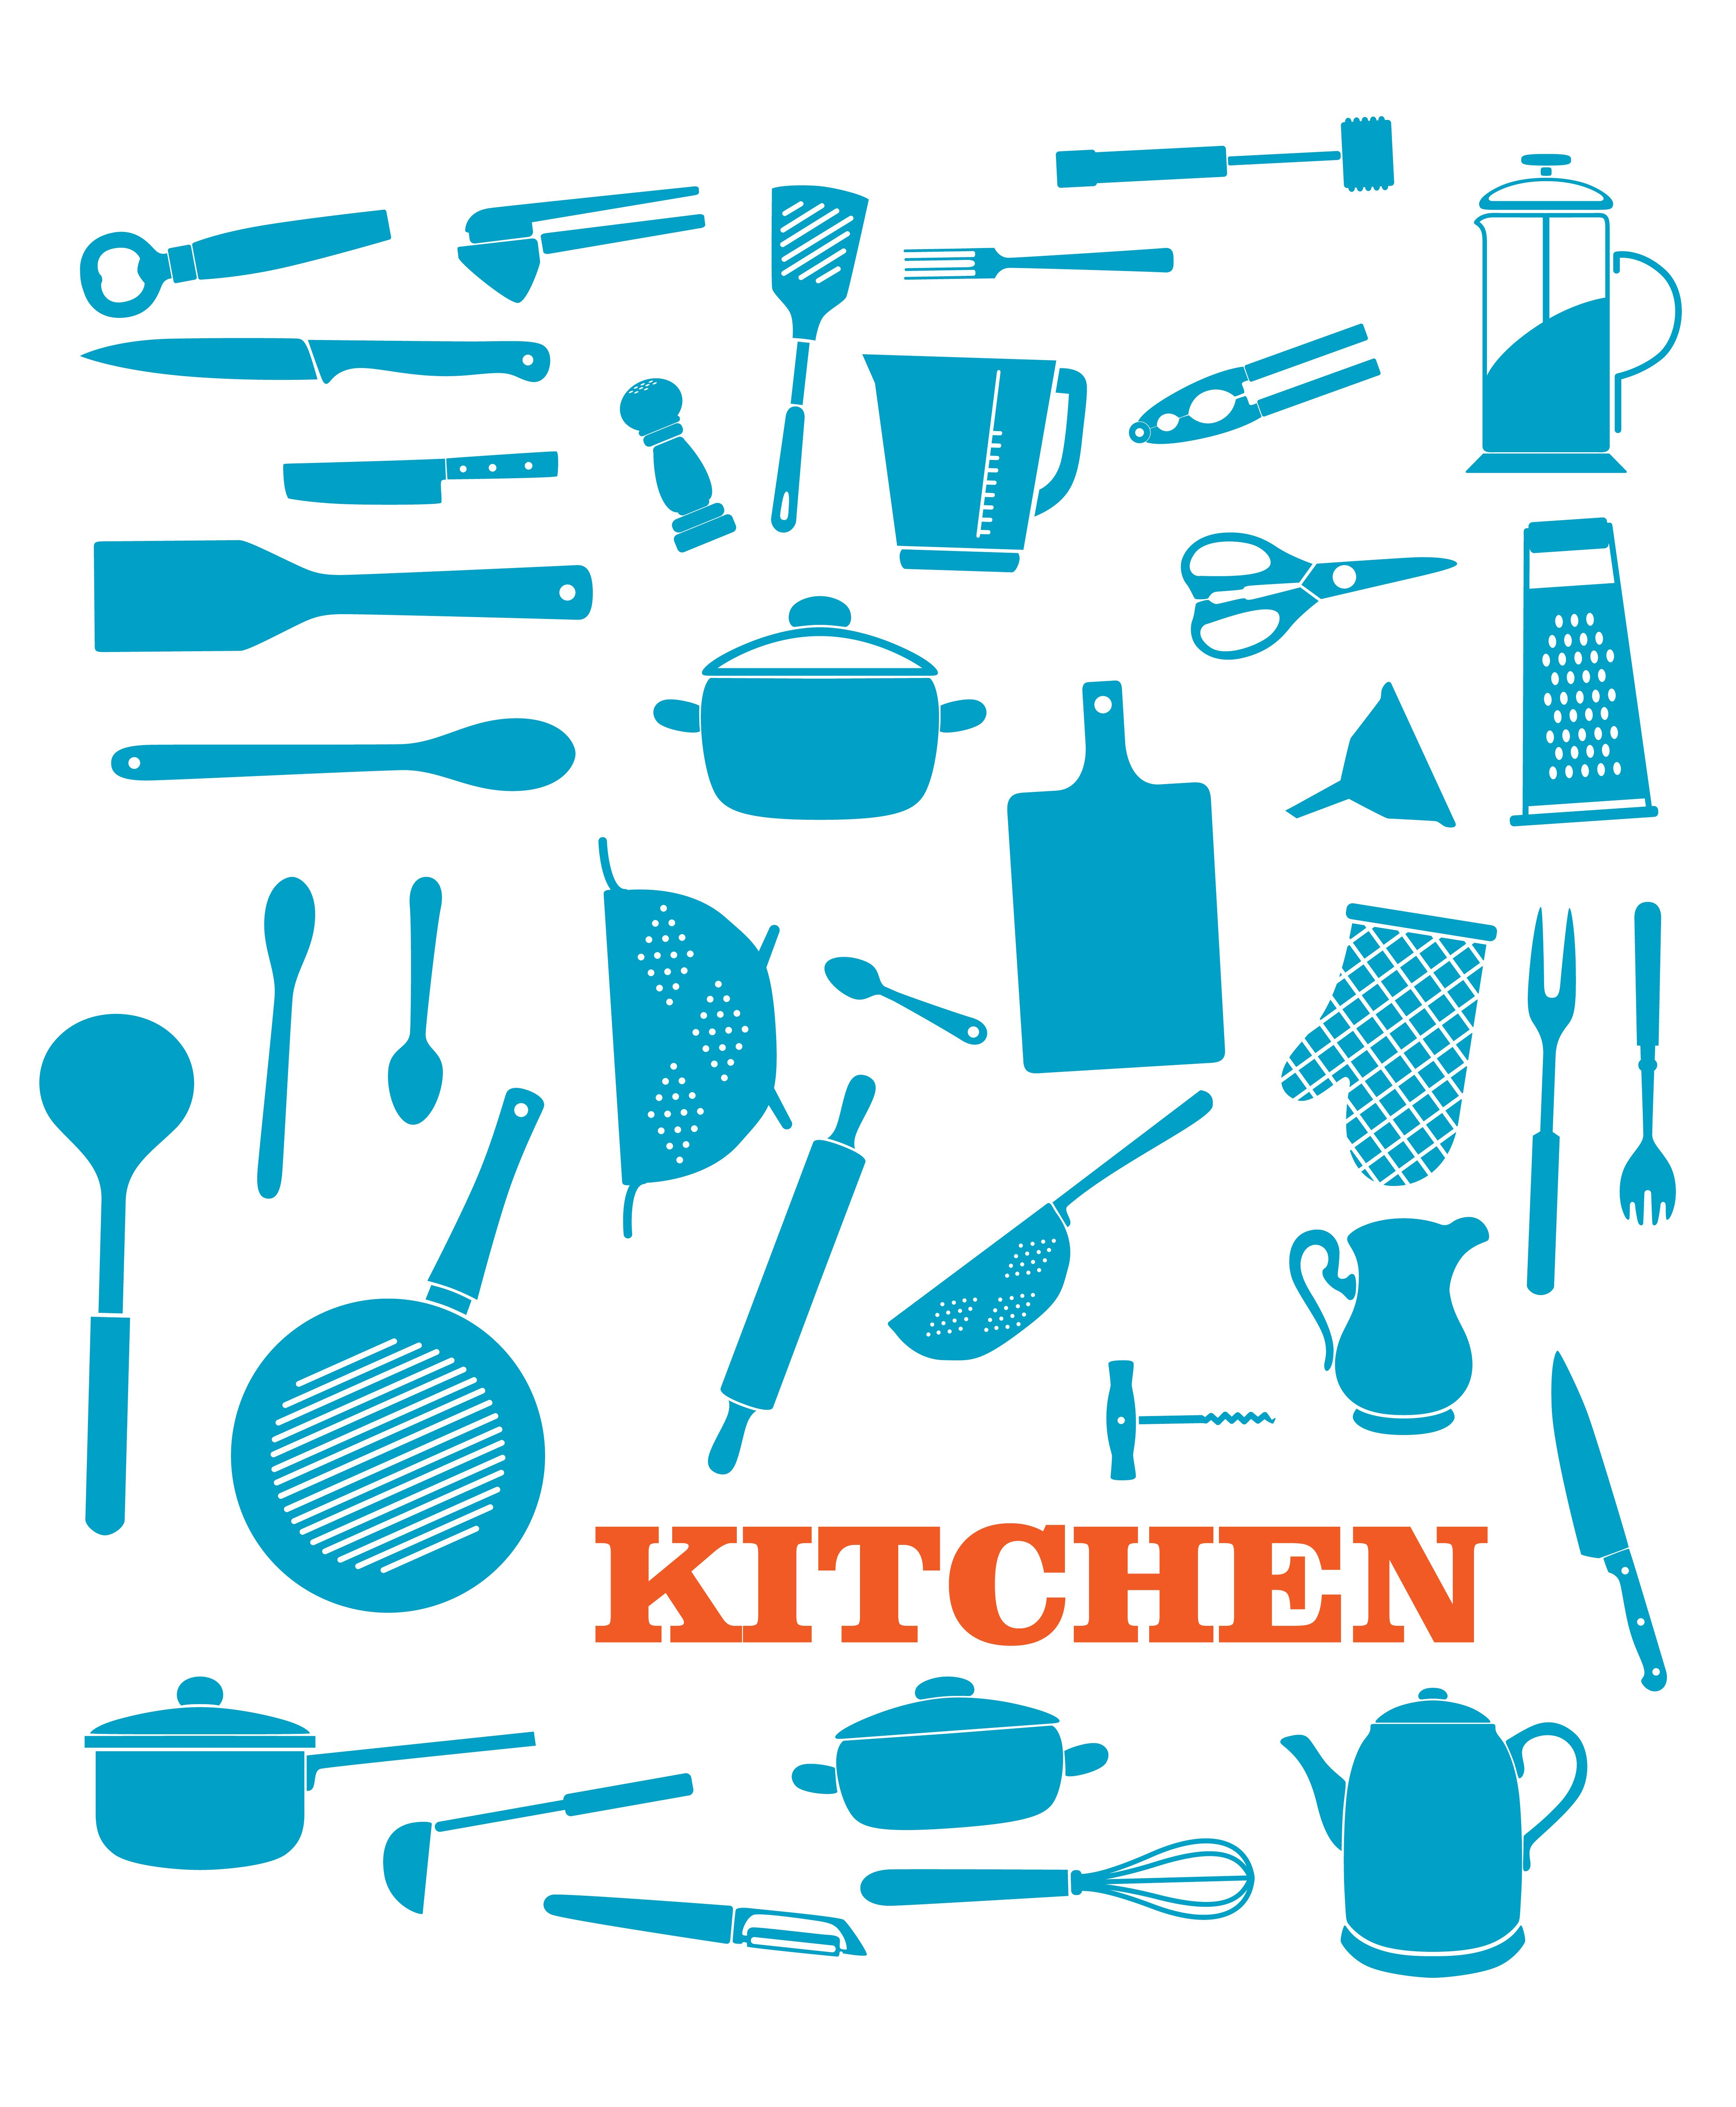 essential cooking tools   Kitchen tools   Pinterest   Kitchens